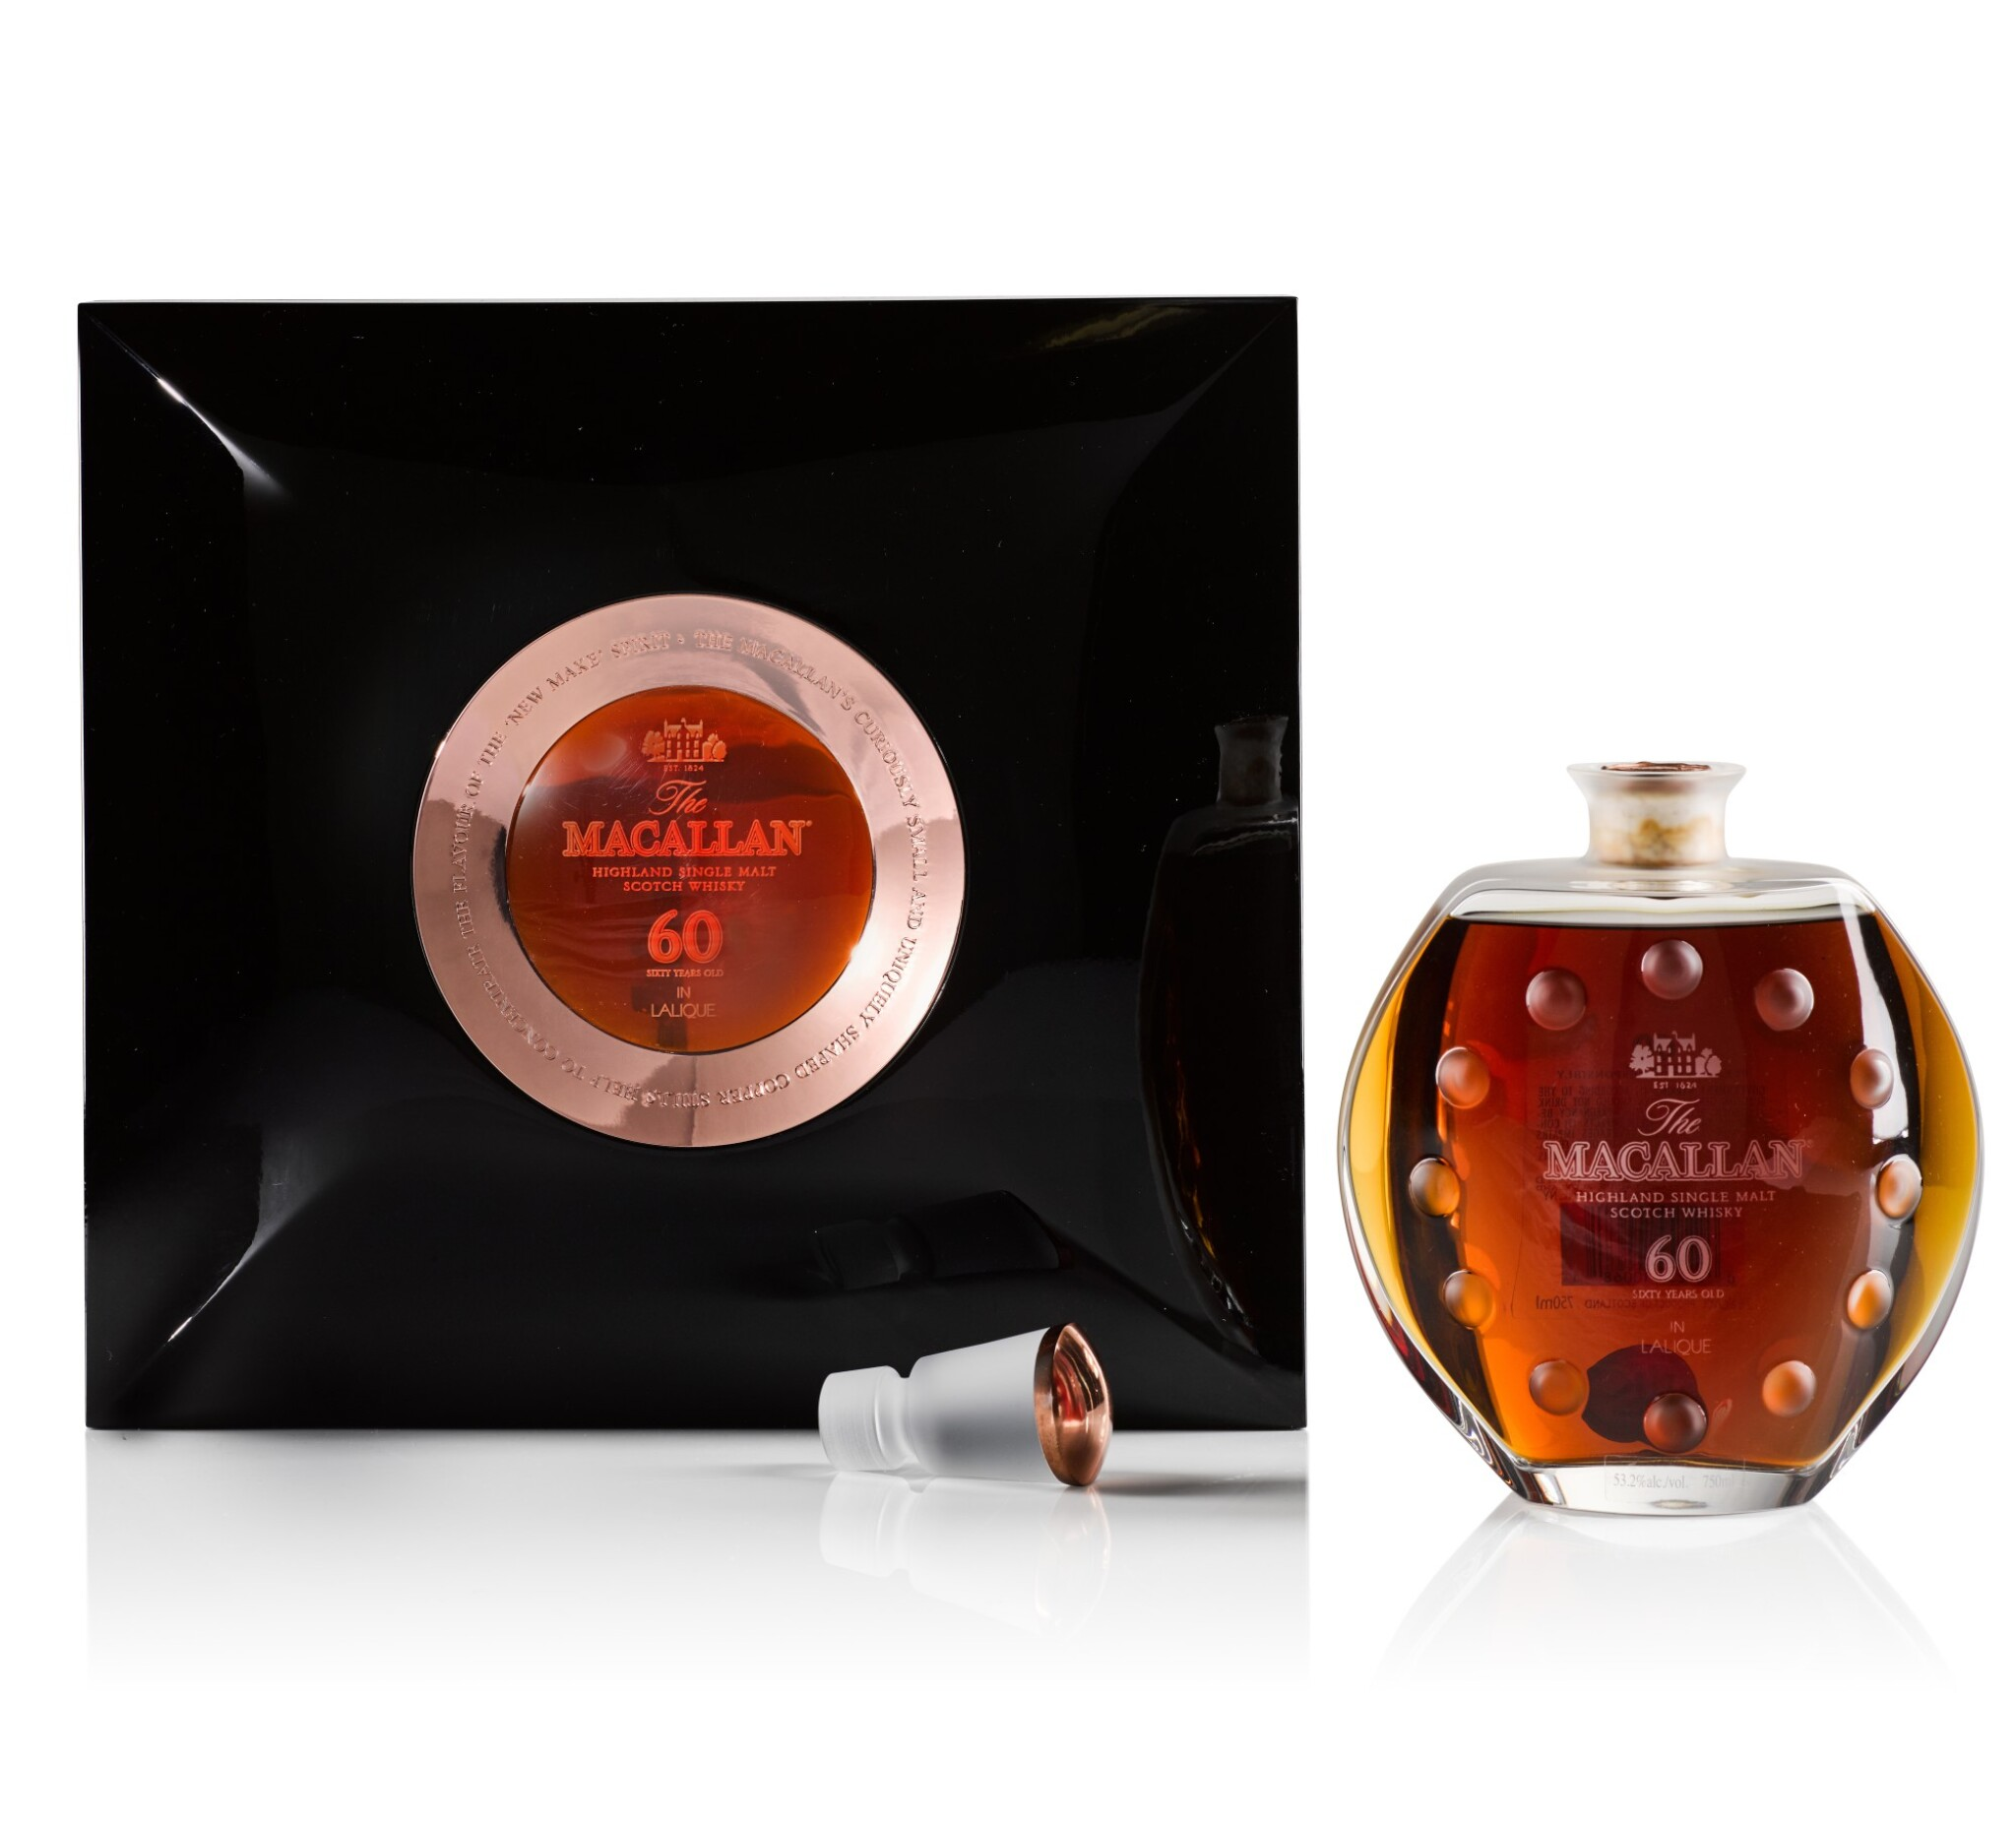 View 1 of Lot 17. The Macallan 60 Year Old in Lalique, 6 Pillars, Fourth Edition, 53.2 abv NV .